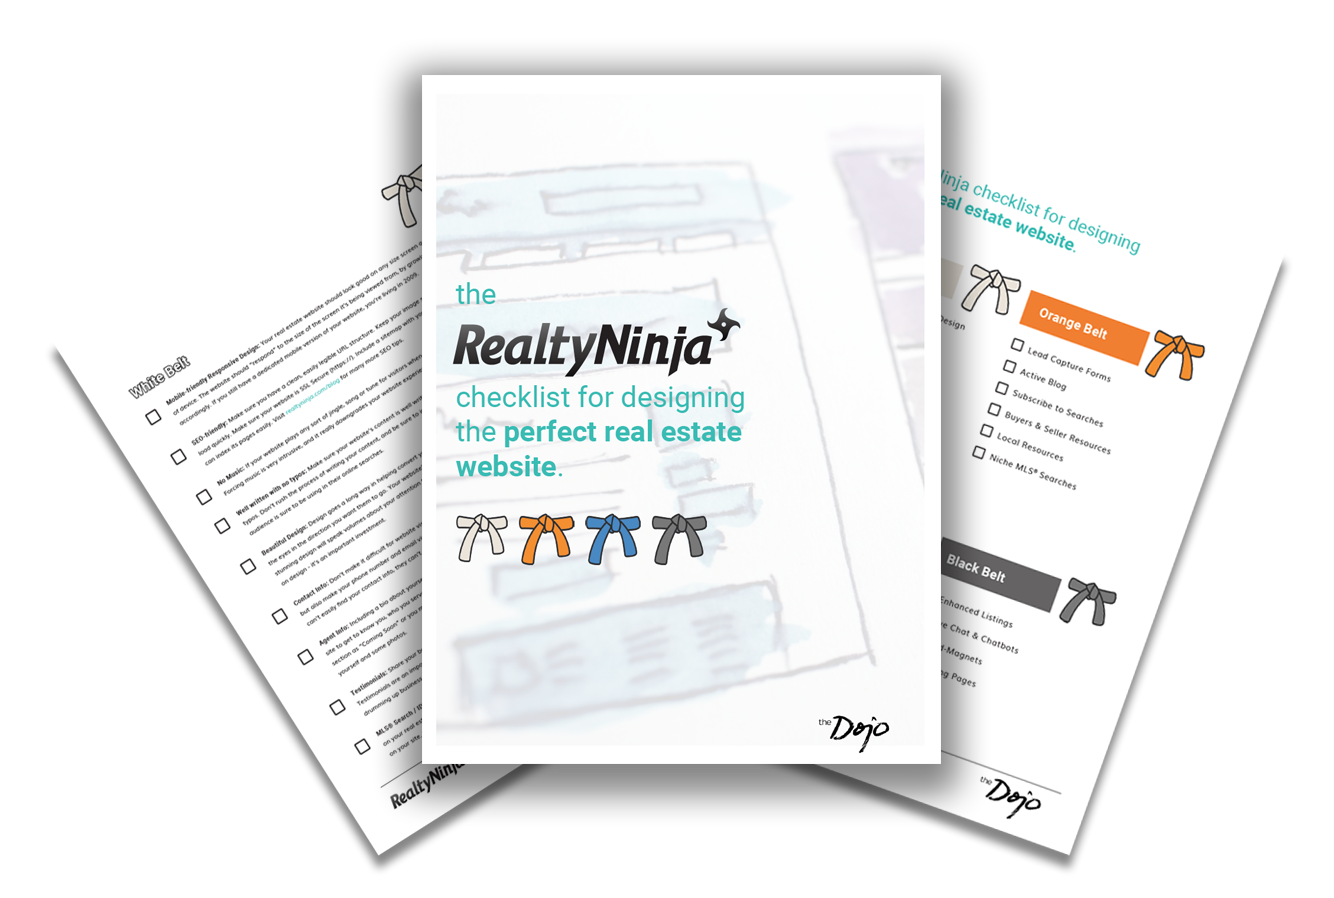 Download Free Checklist - How to design the perfect real estate website